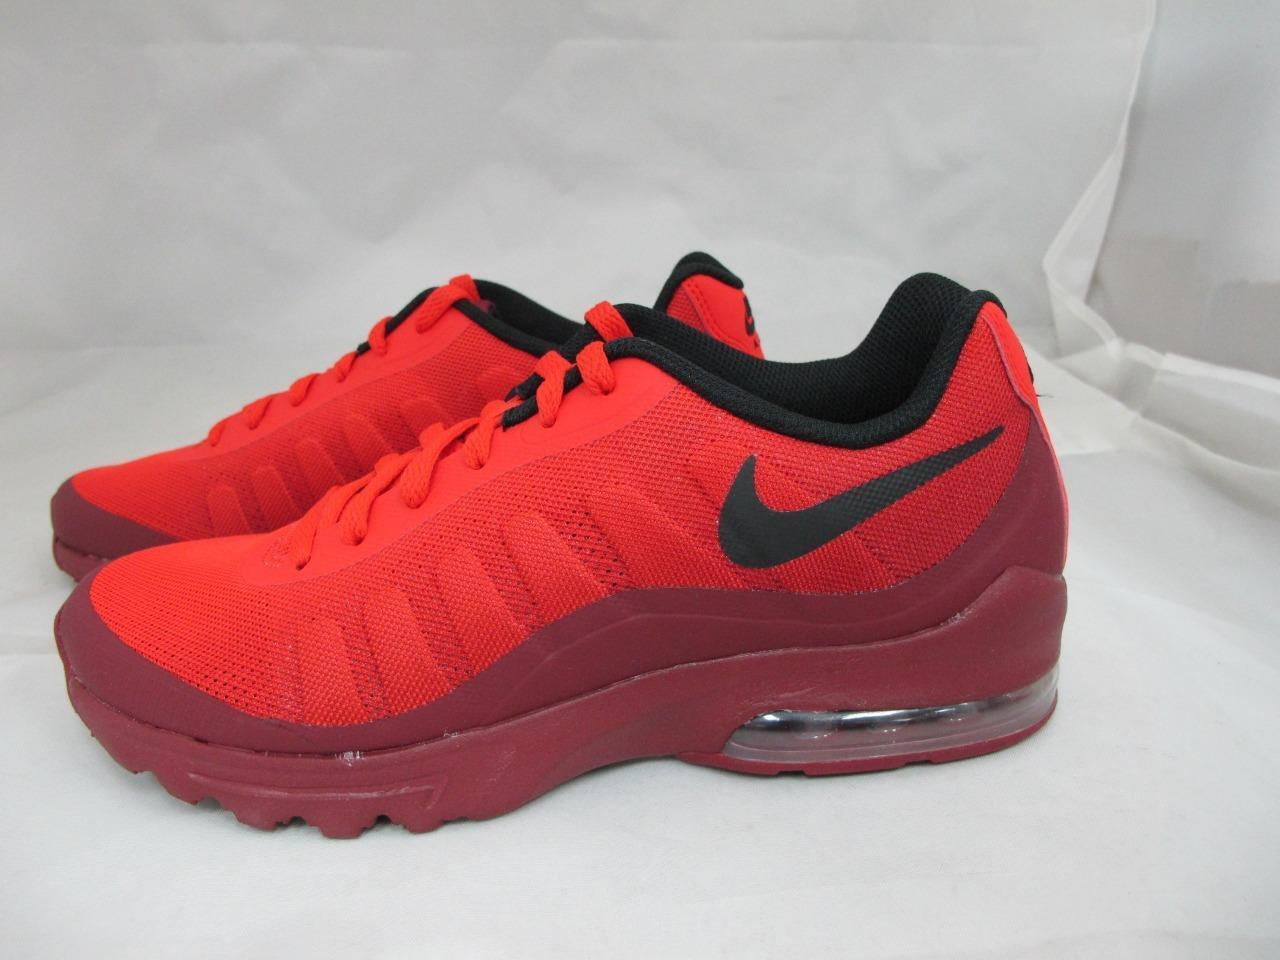 NEW MEN'S NIKE AIR MAX INVIGOR PRINT 749688-603